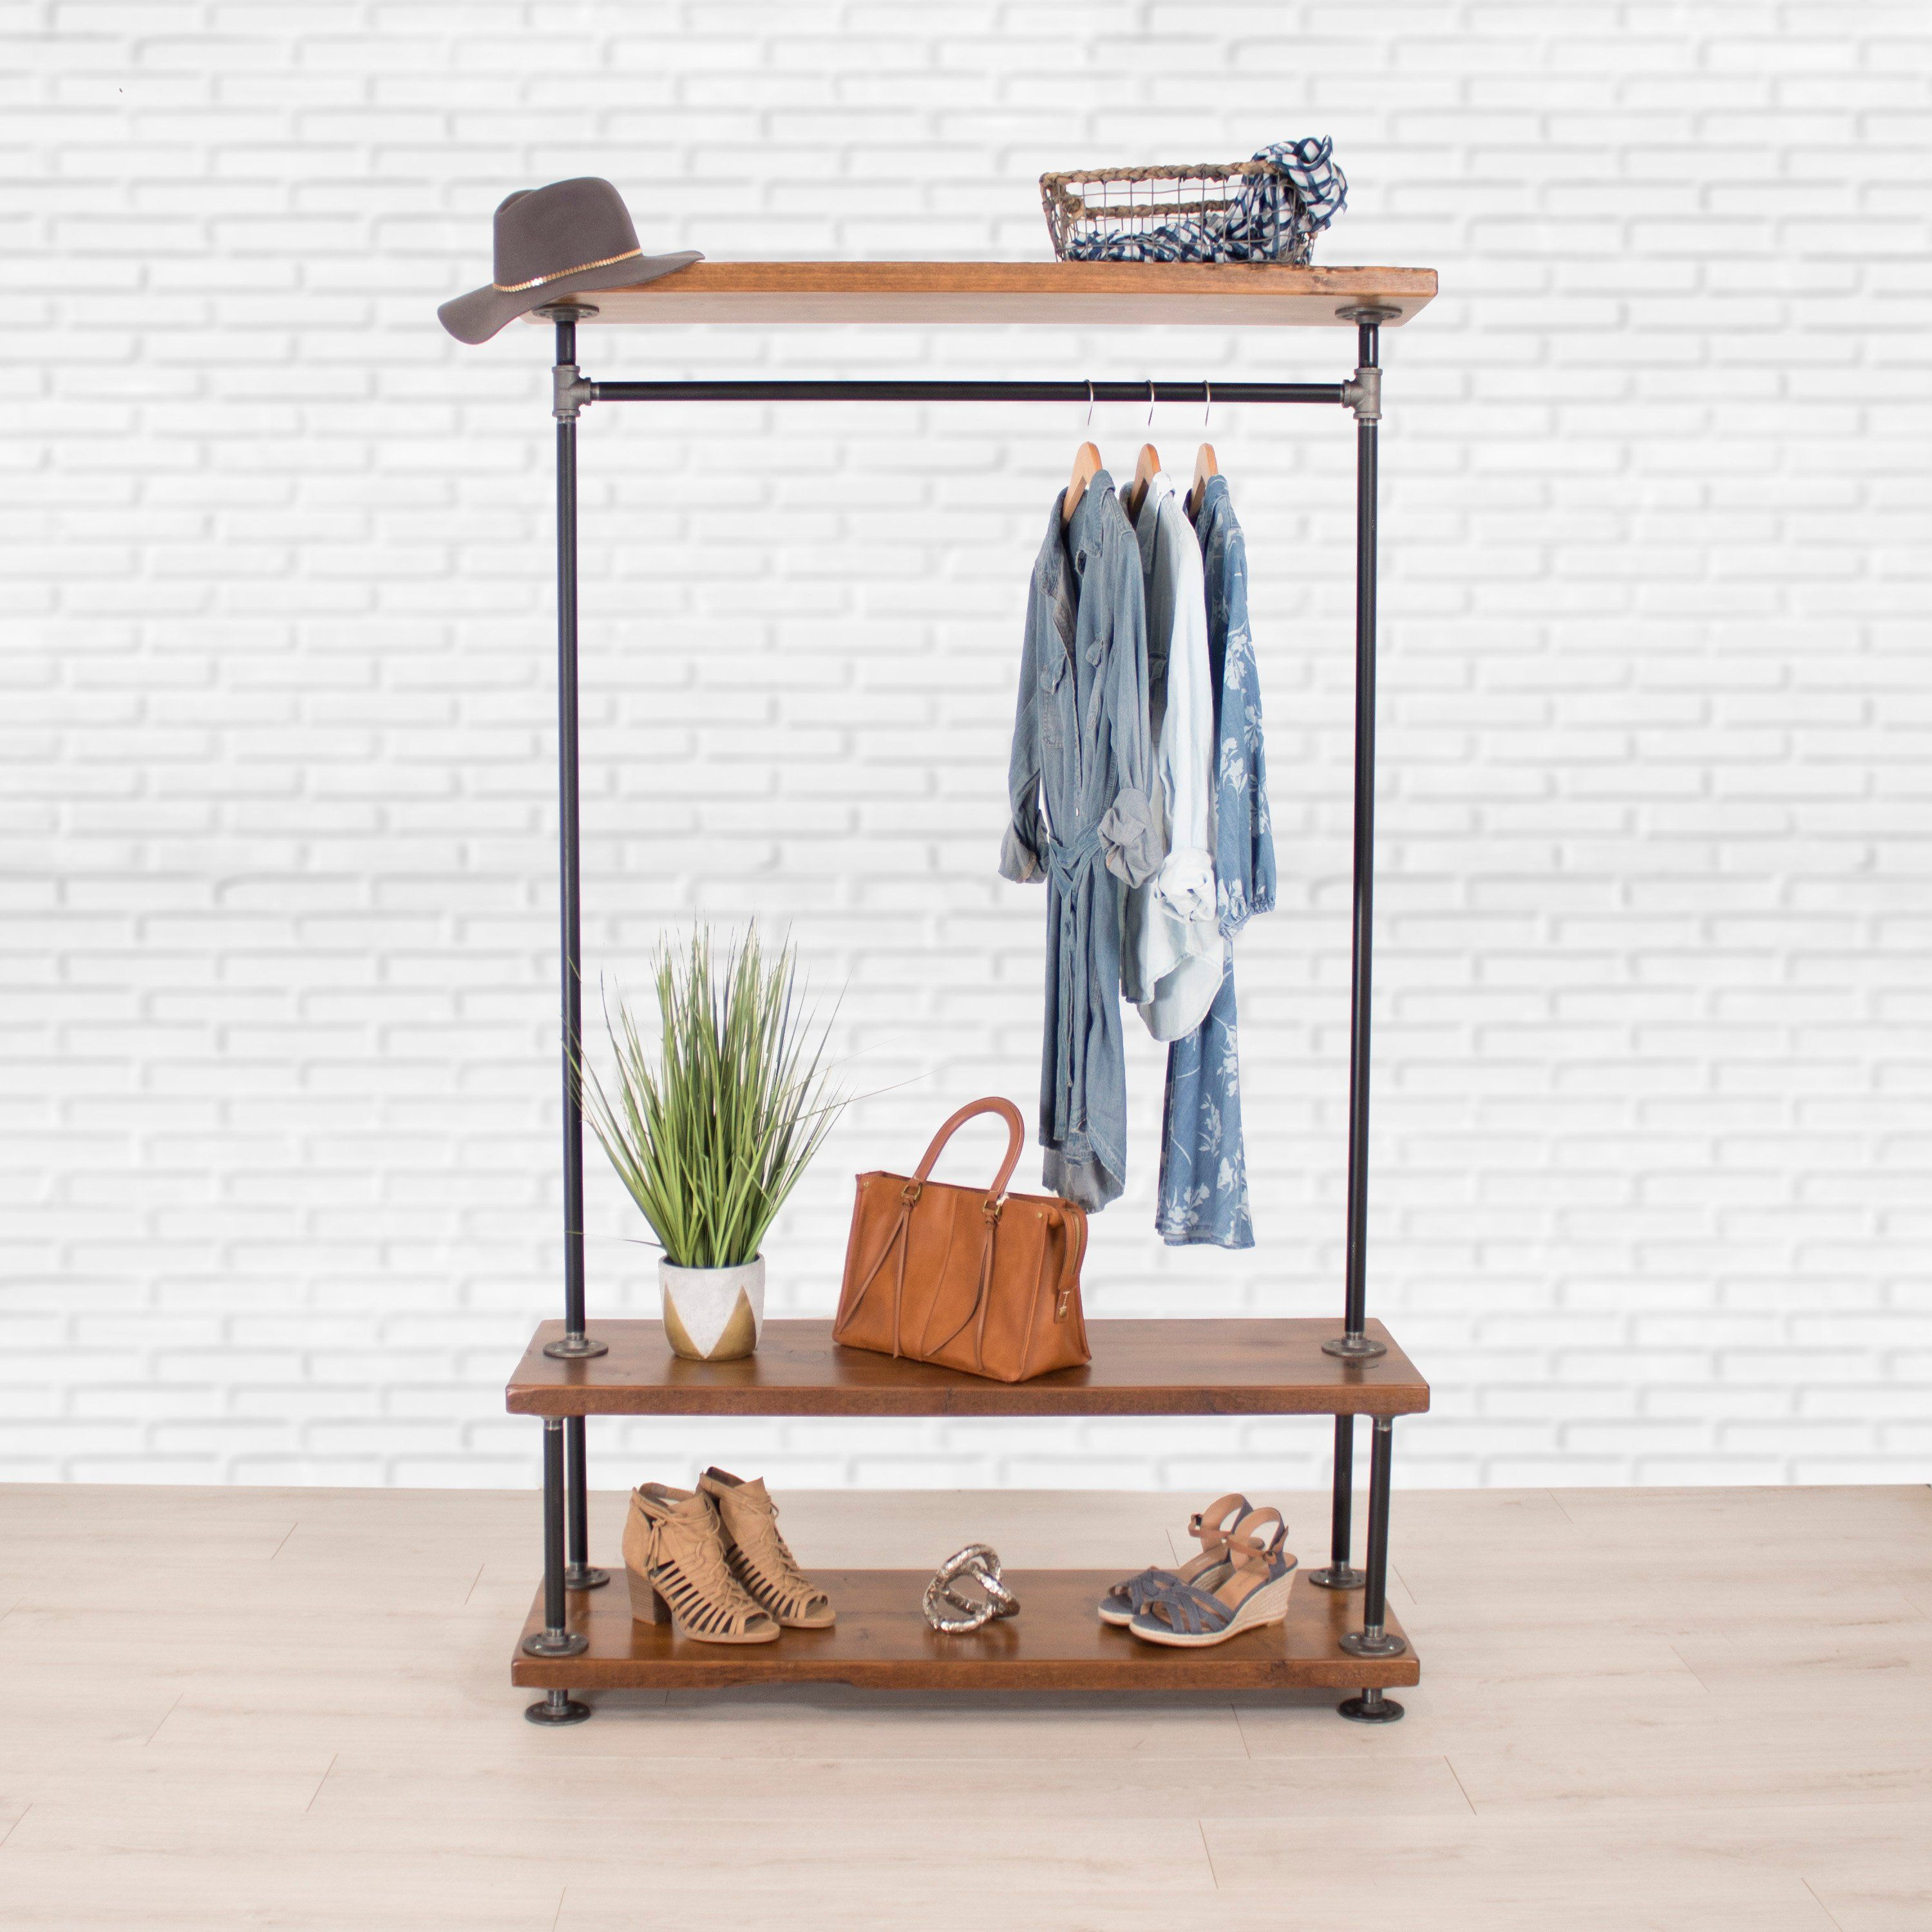 Industrial Pipe Clothing Rack with Cedar Wood Shelving by William